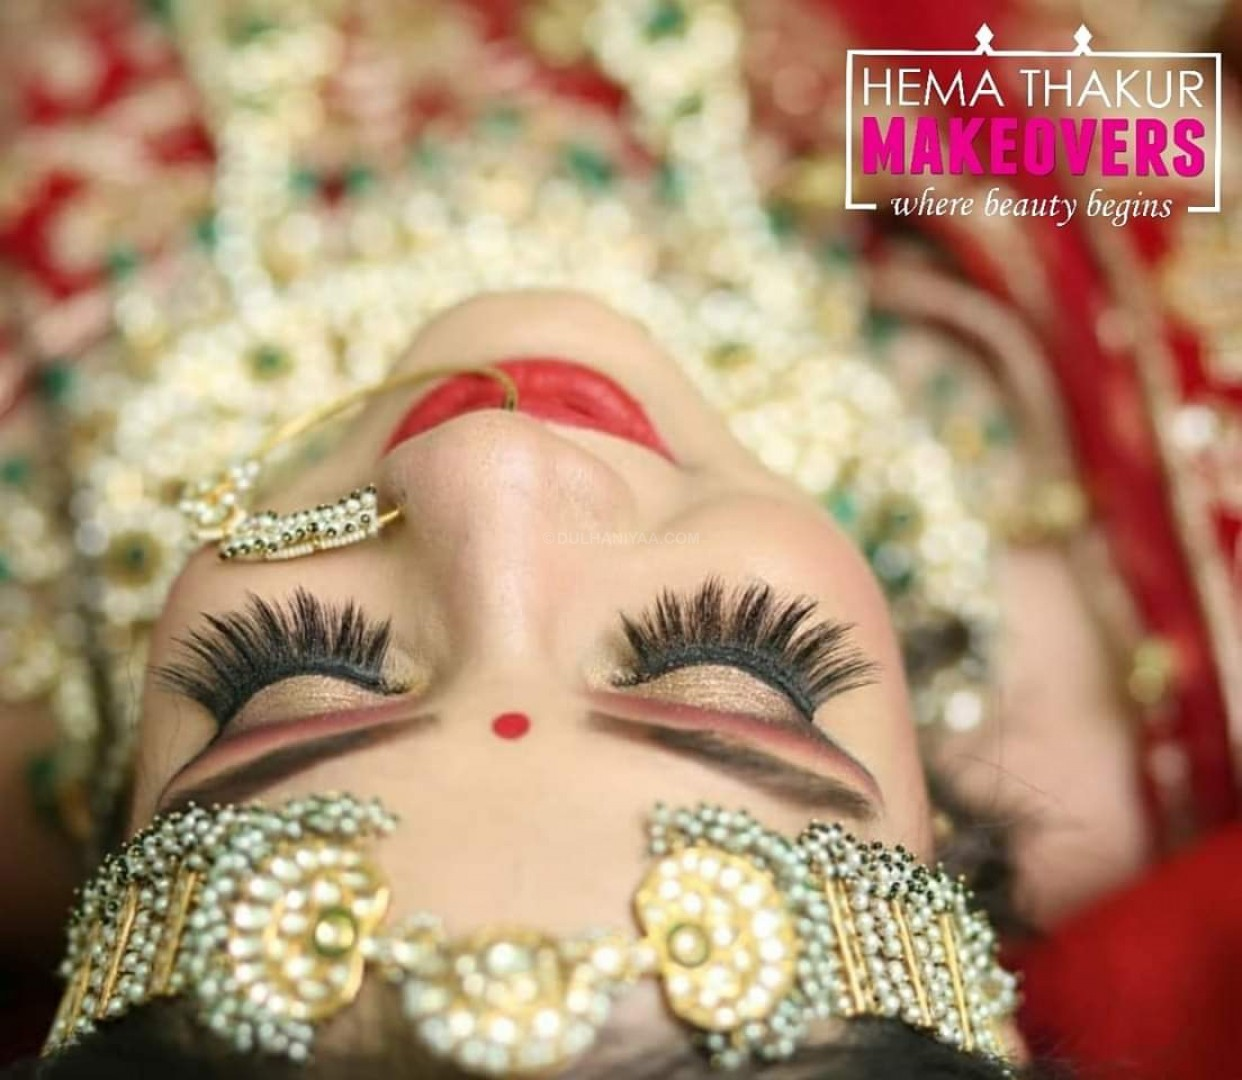 Price & Packages of Hema Thakur Makeovers - Bridal Makeup